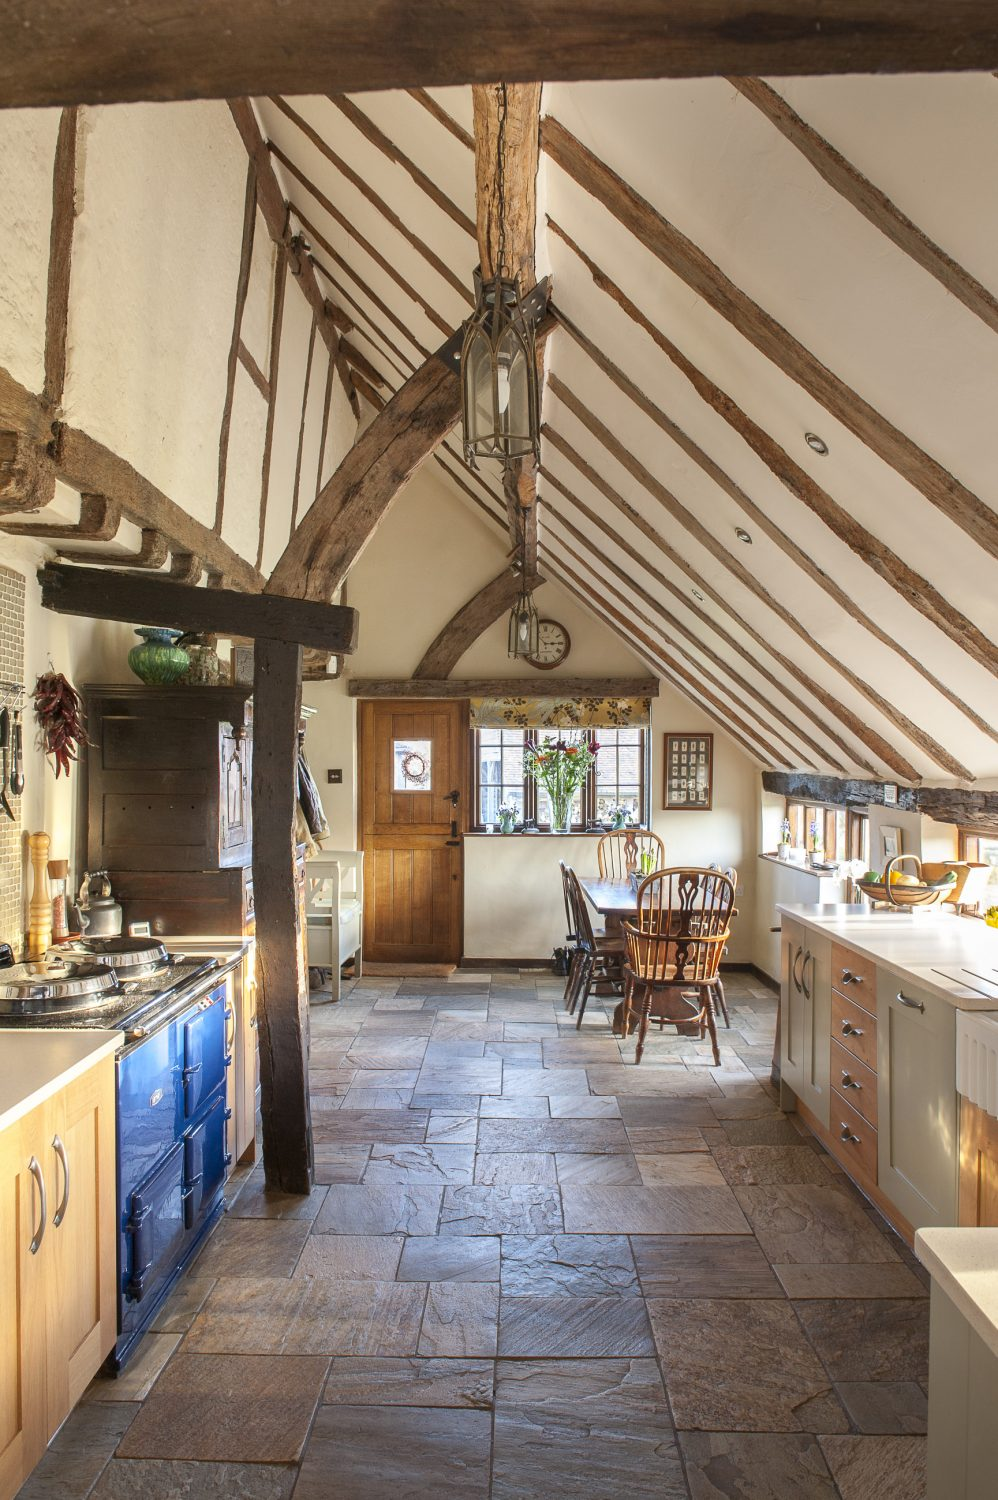 The first room you enter, from the box-edged gravel drive, is the kitchen. It is under a cat-slide roof at the back of the house, with the ceiling raised to the roof, revealing what was once the exterior rear wall and windows of the farmhouse